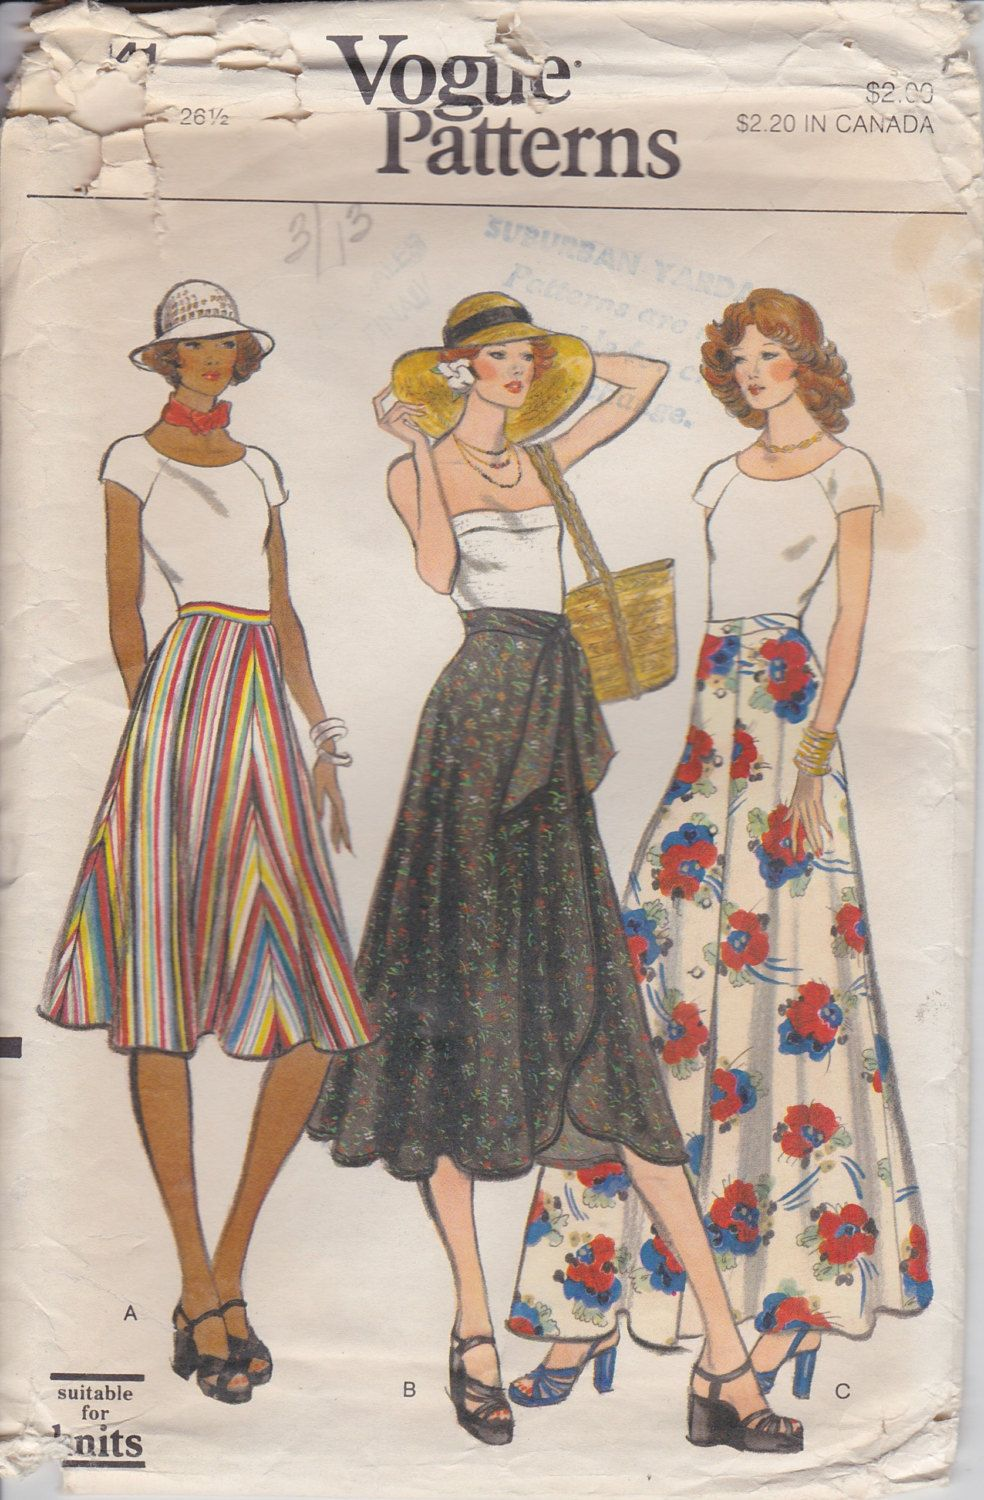 105280f71f 70s Wrap Skirt 1970s Maxi Skirt Sewing pattern Vogue by SissysPatterns on  Etsy